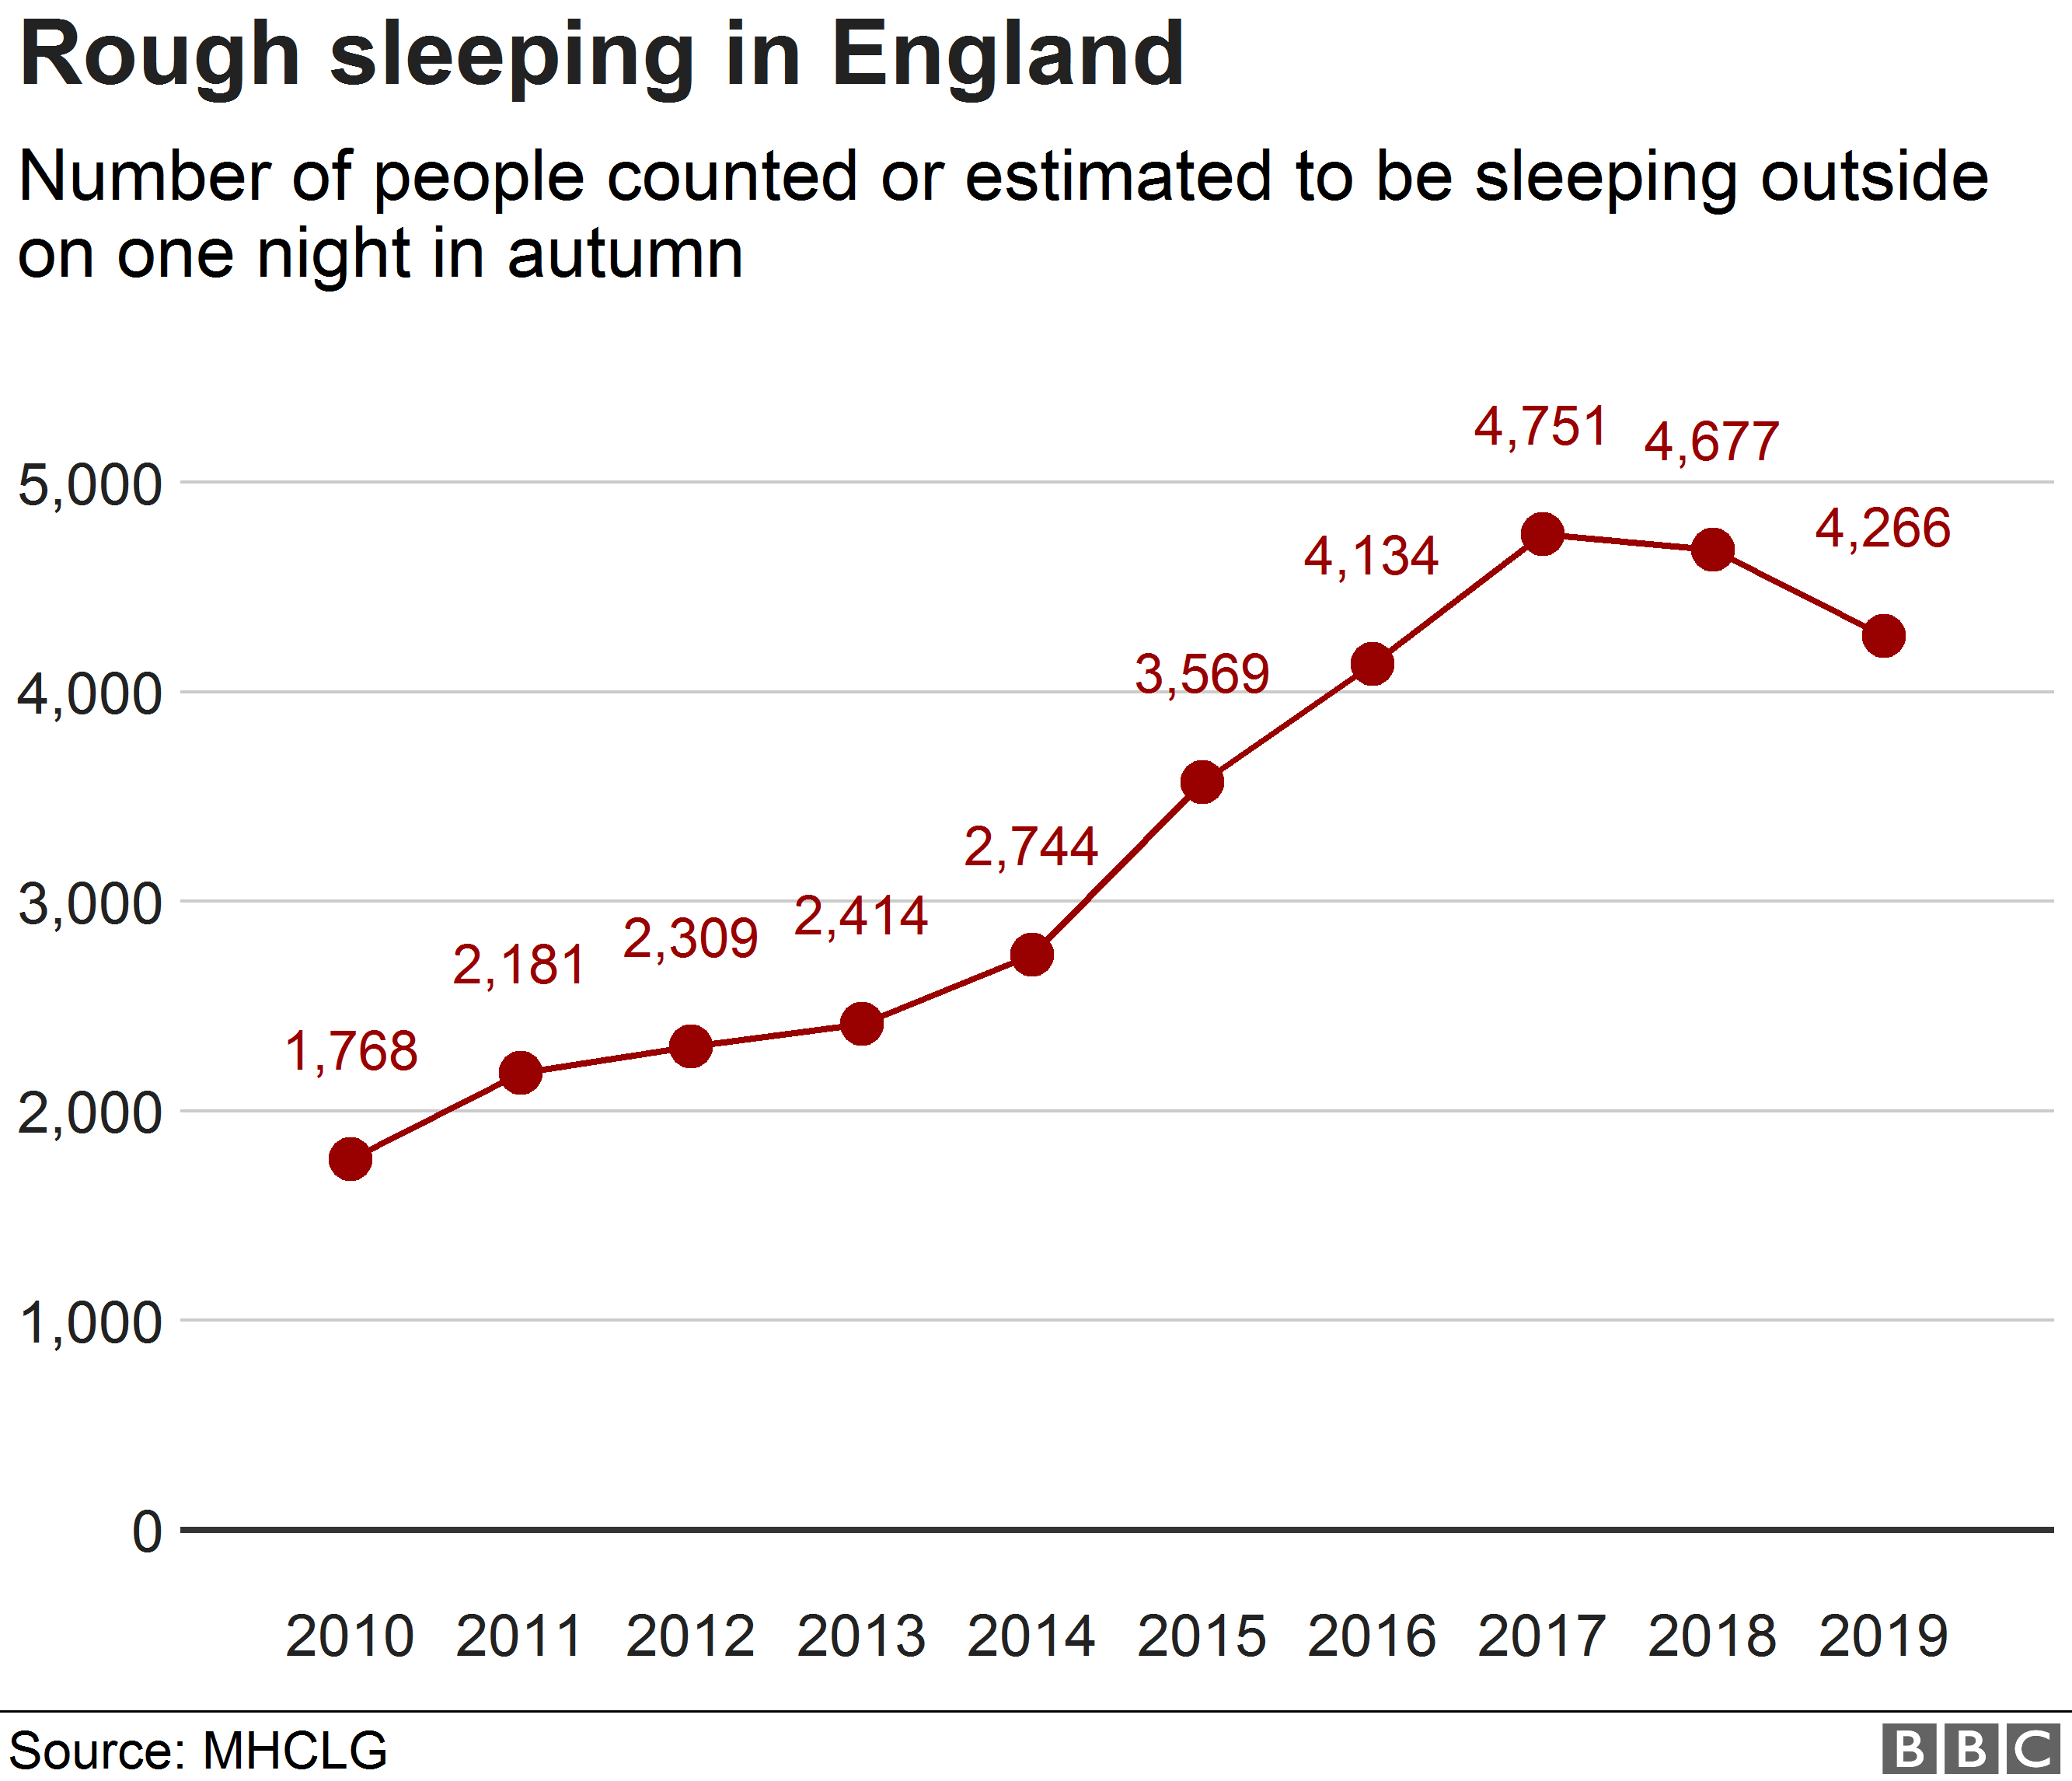 Chart showing annual rough sleeping figures for England